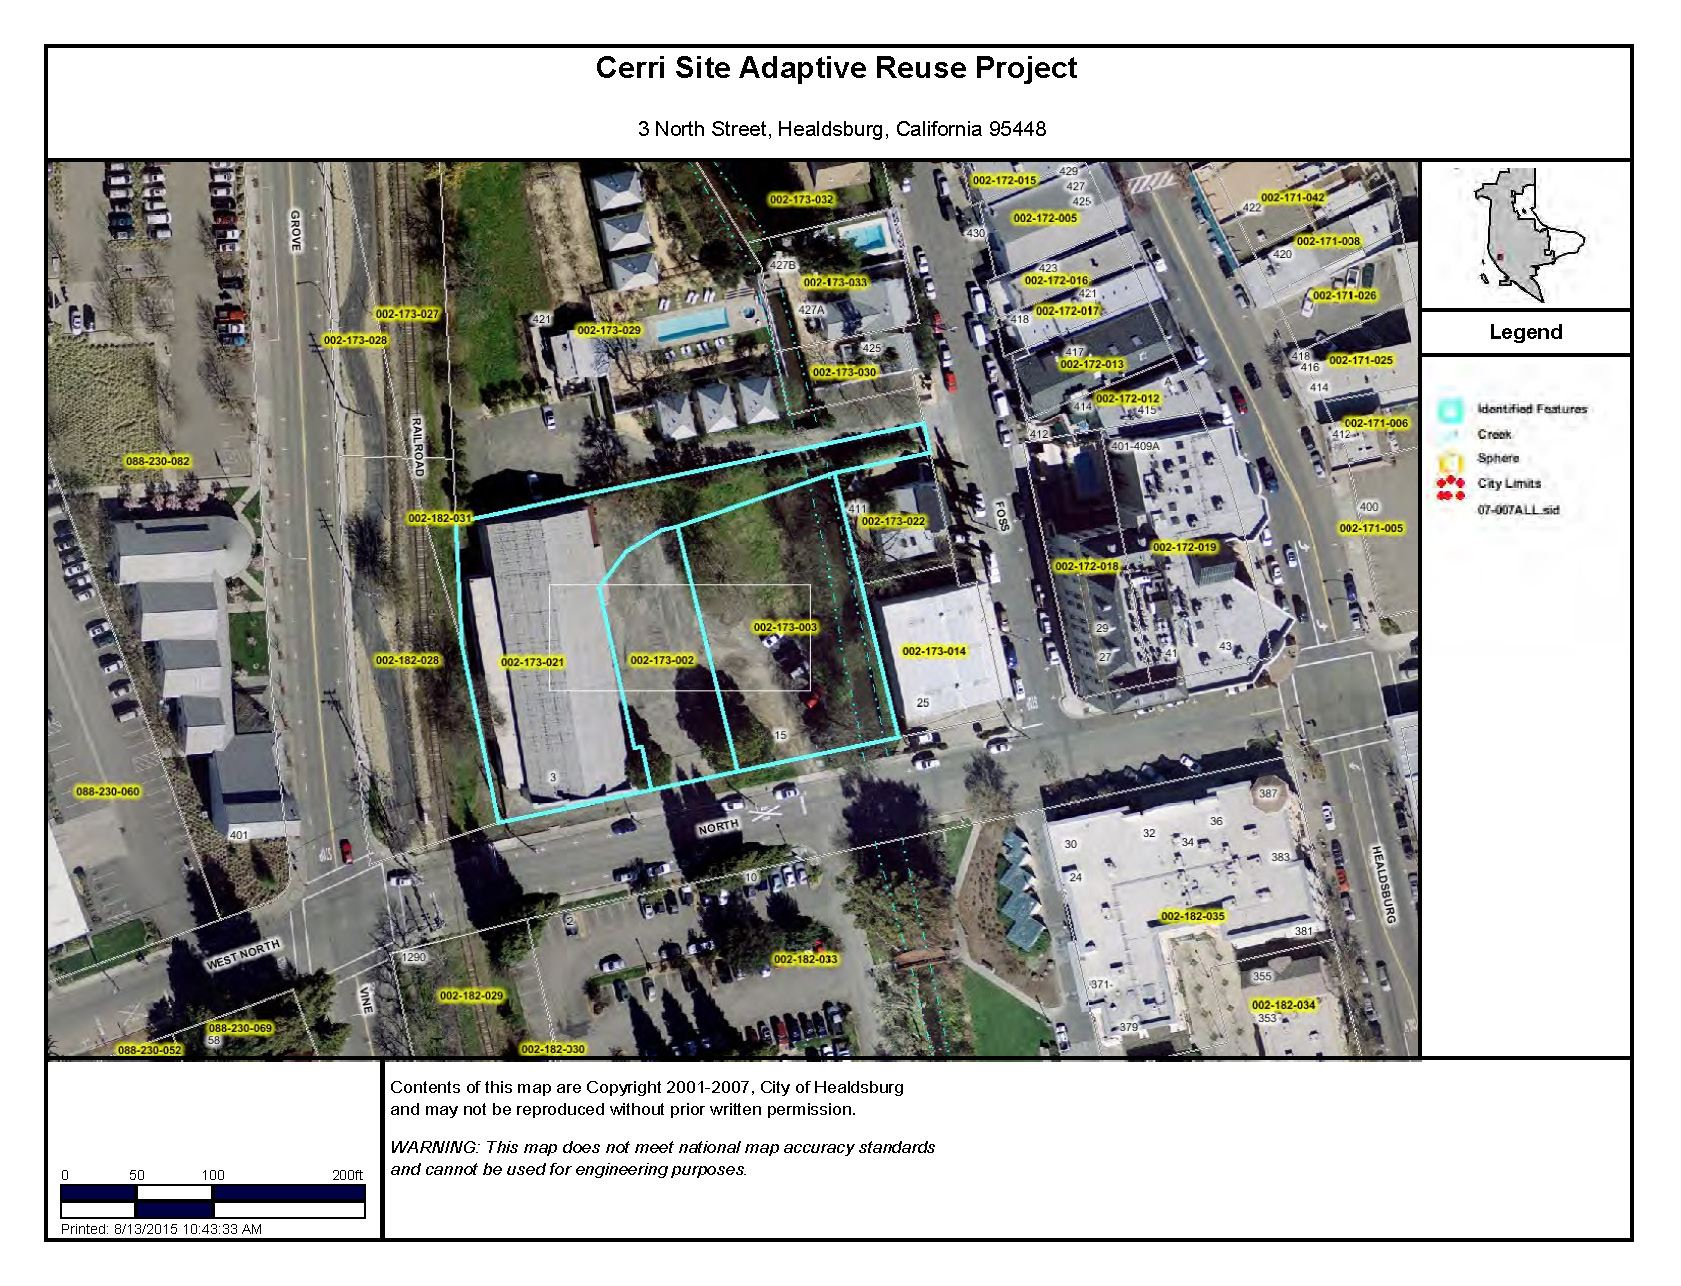 Cerri Site Adaptive Reuse Project Site Map - Healdsburg